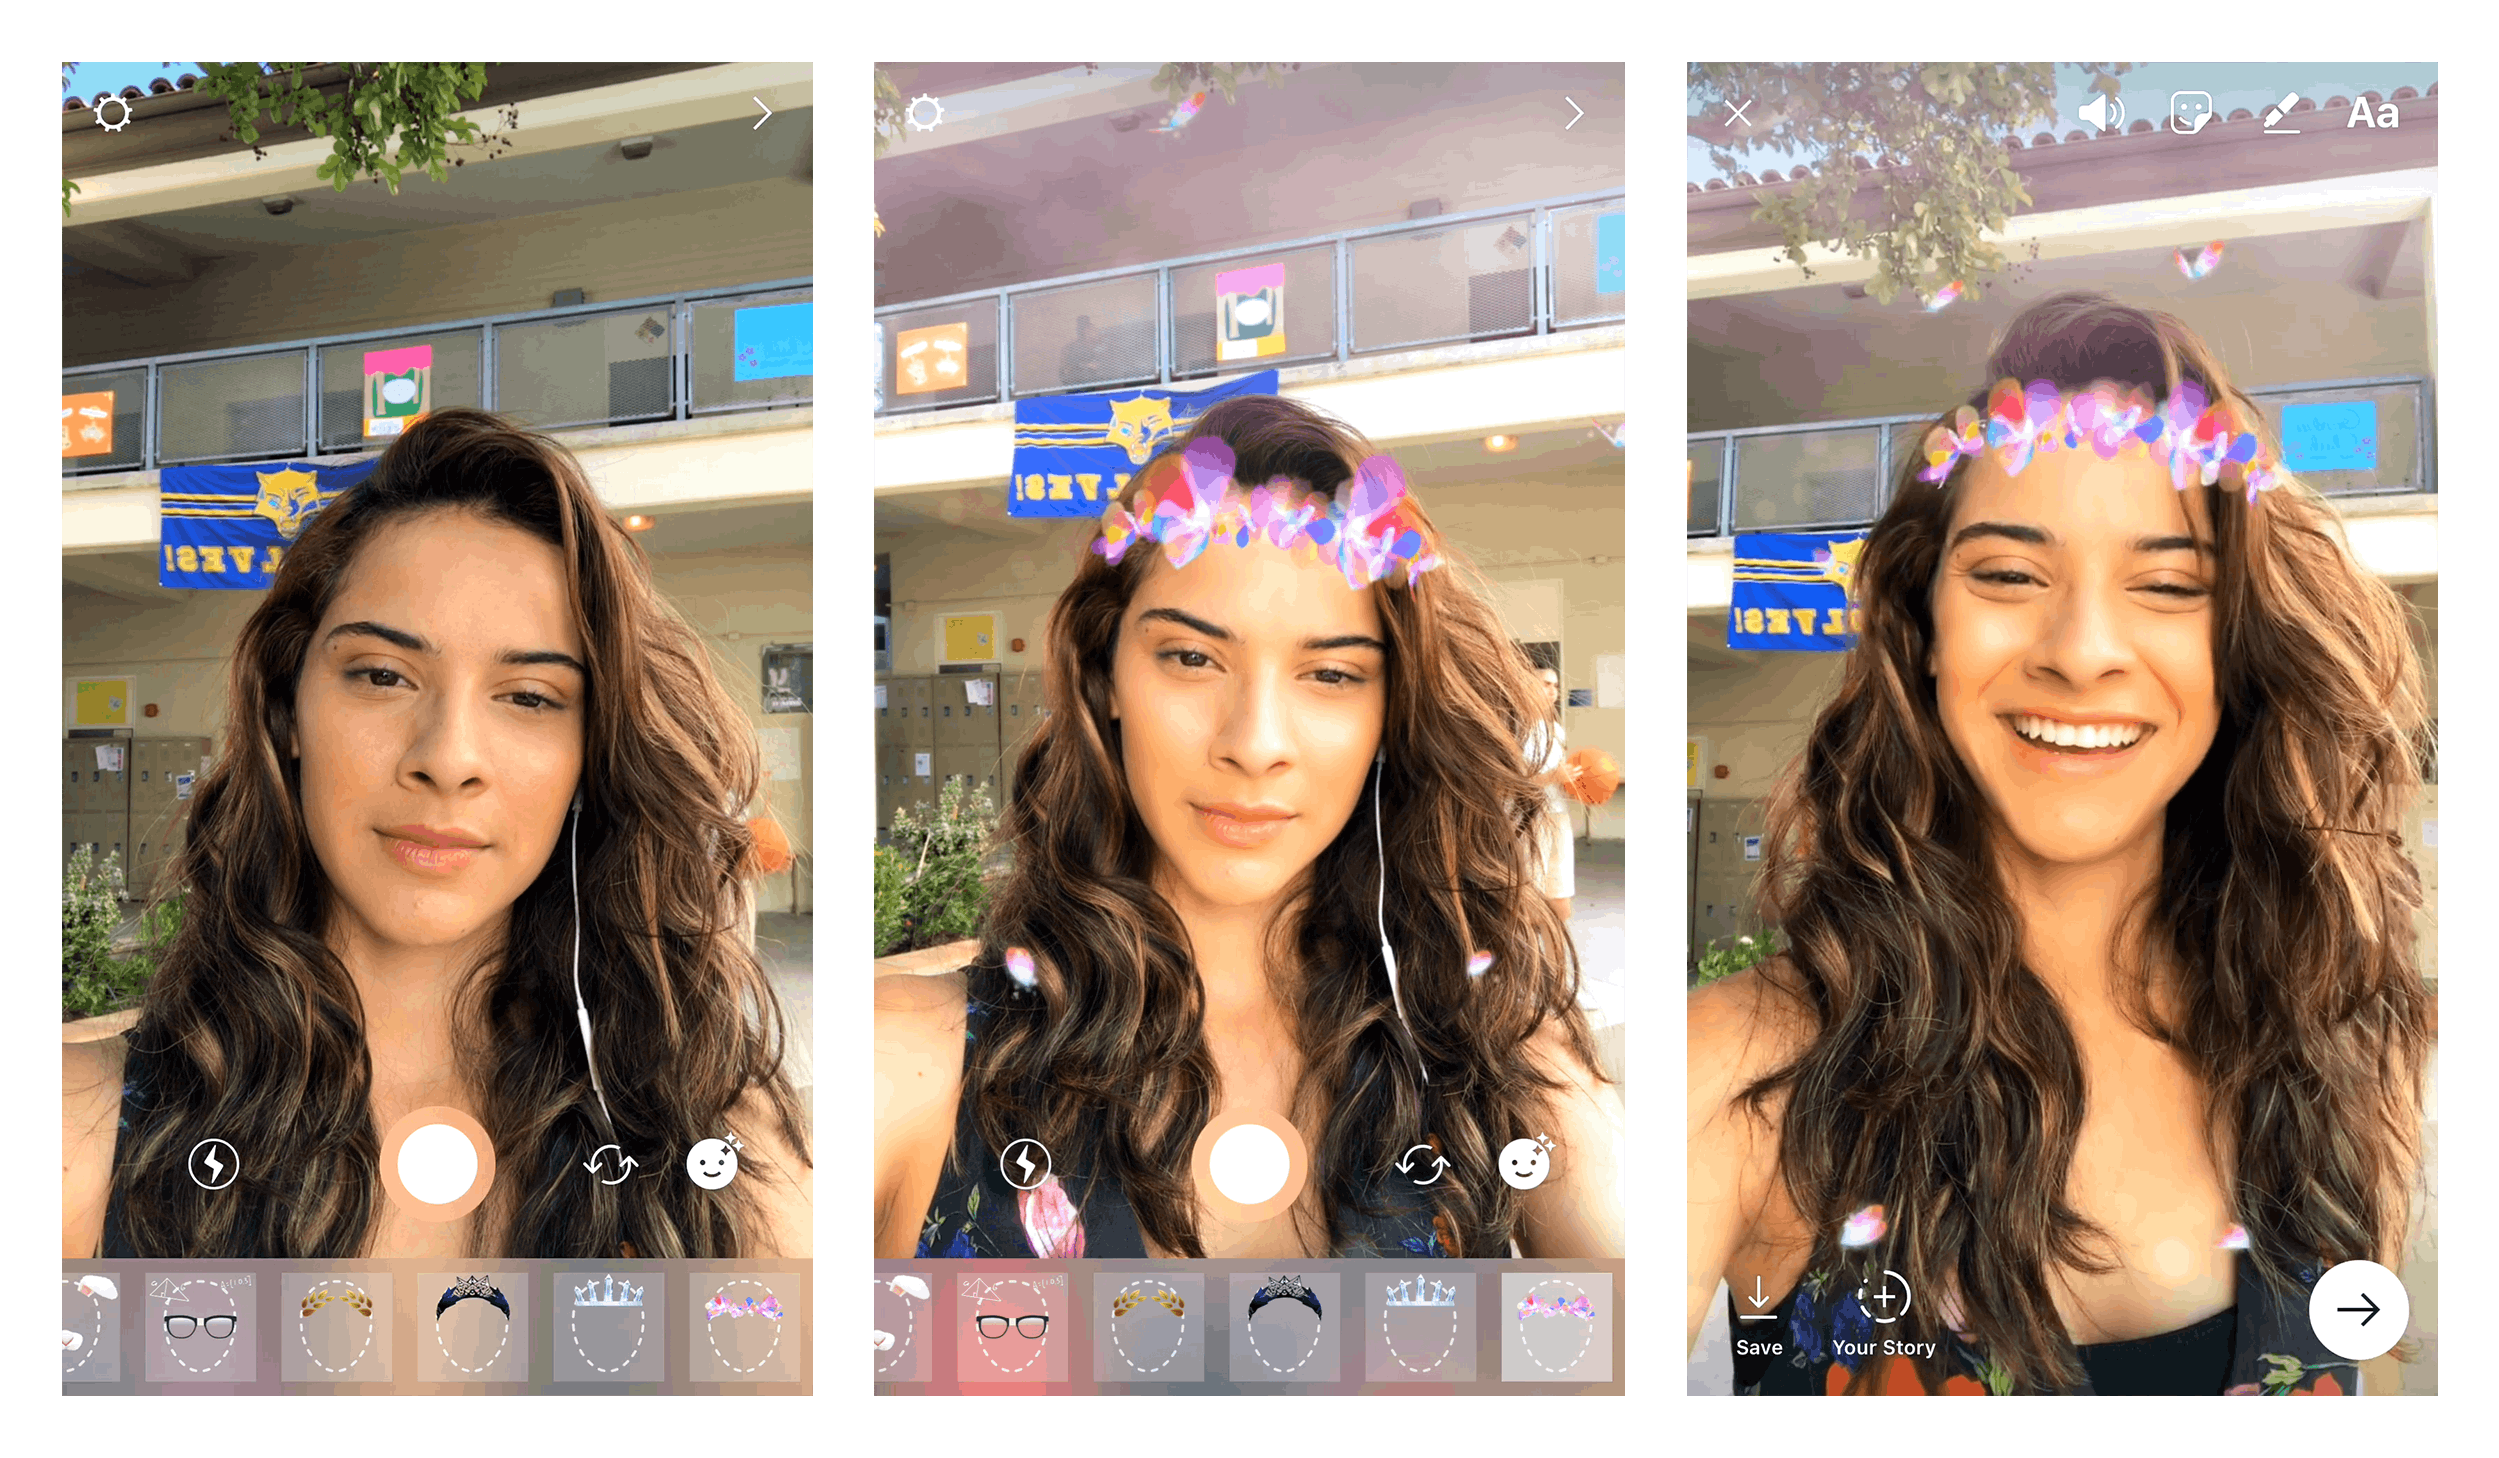 Instagram Rips Off Snapchat, Again - This Time with Face Filters